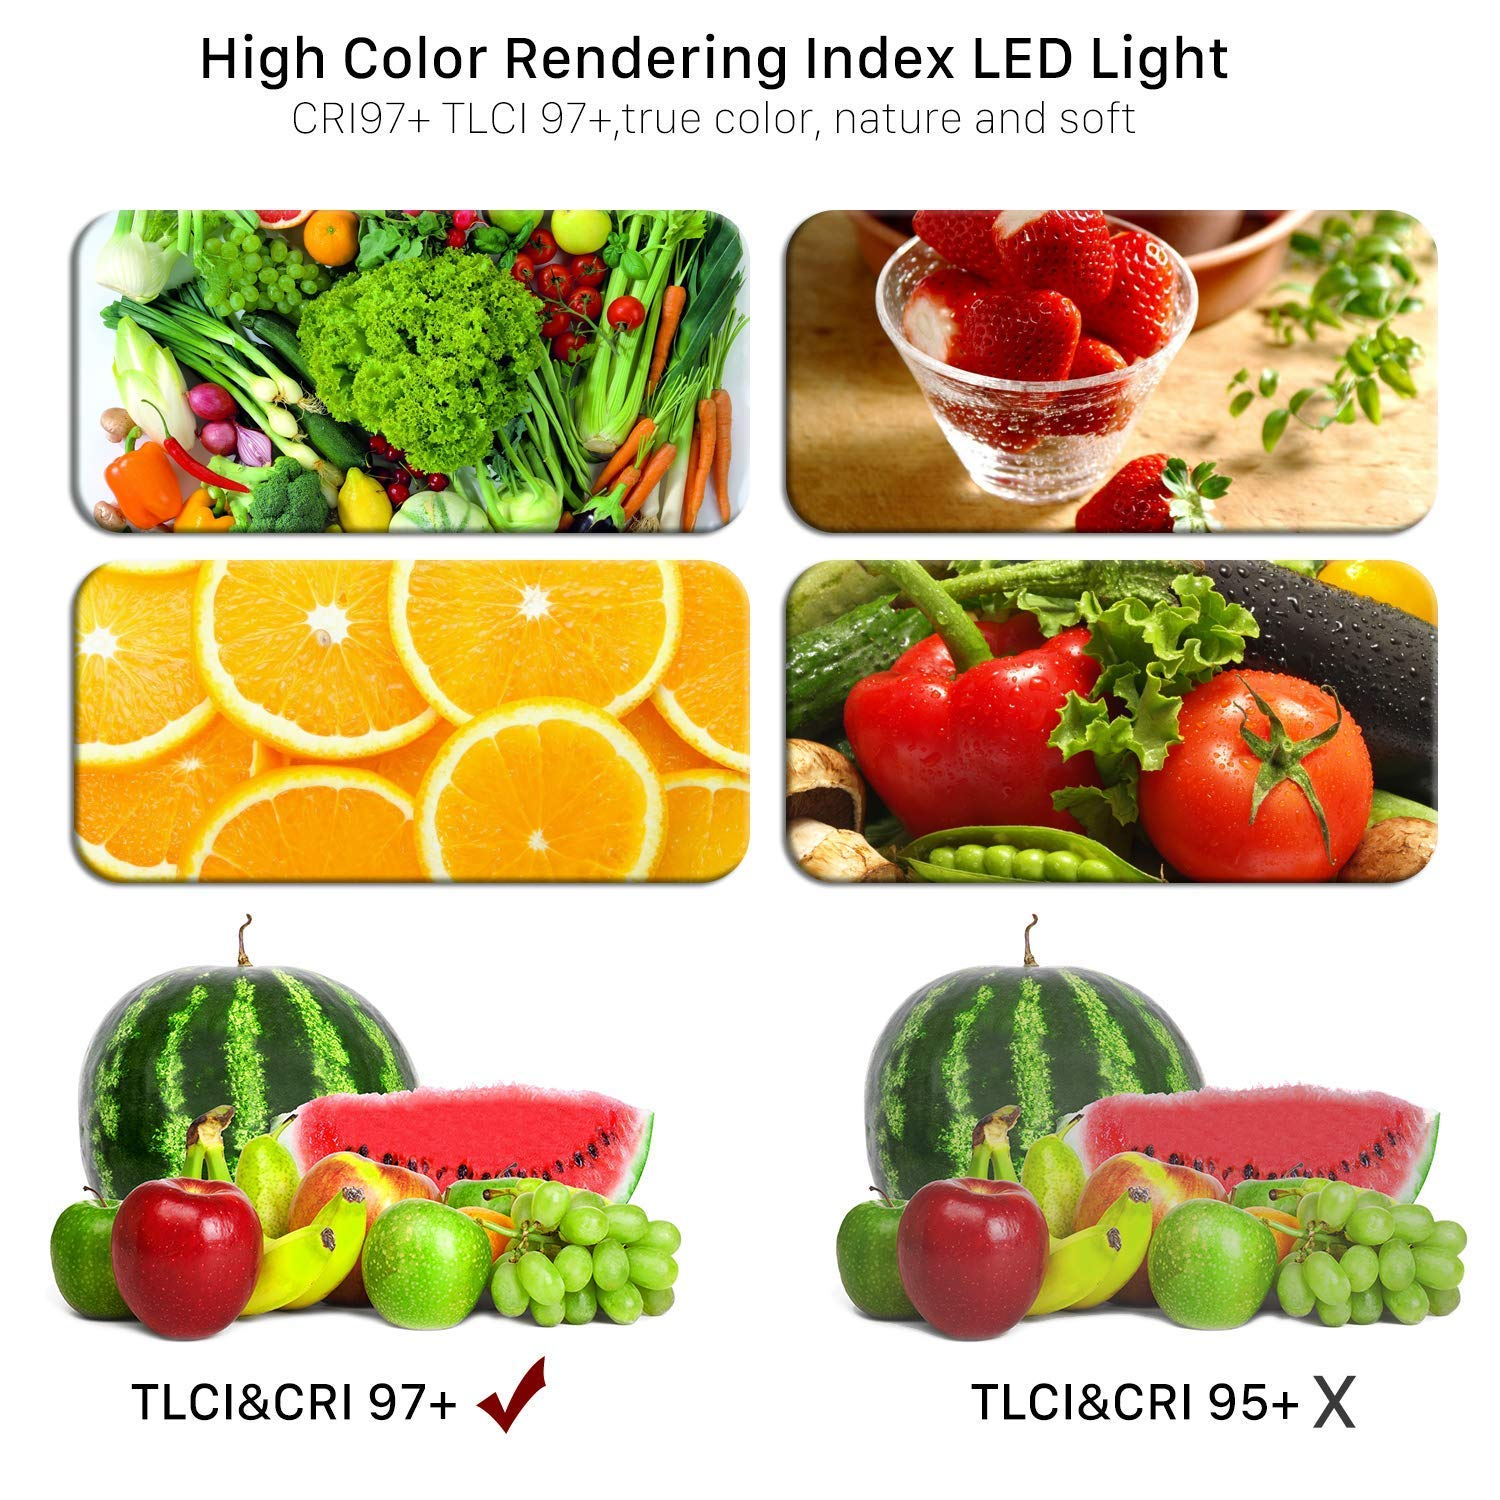 GVM 3 Pack LED Video Lighting Kits with APP Control TLCI97 Led Video Light Panel CRI97 Barndoor Bi-Color Variable 2300K~6800K with Digital Display Brightness of 10~100/% for Video Photography